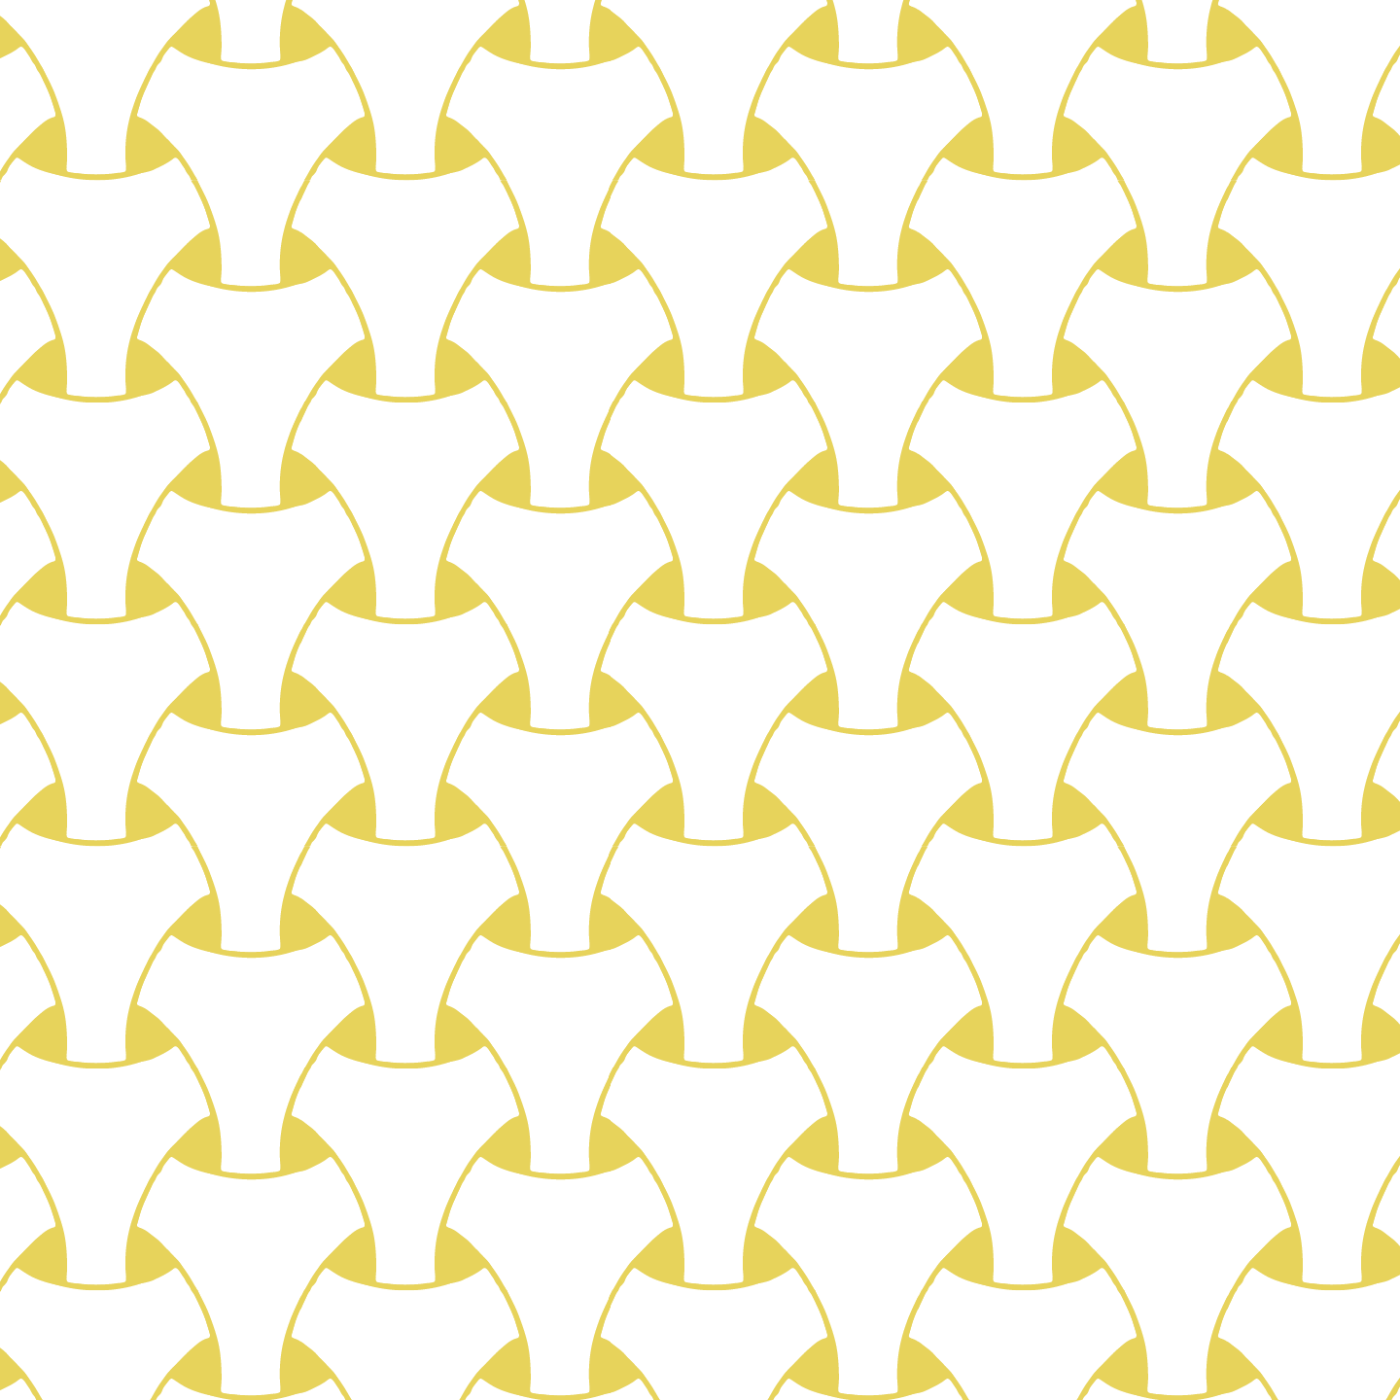 Island Weave - Dusty Yellow Wallpaper - Art in Chaos